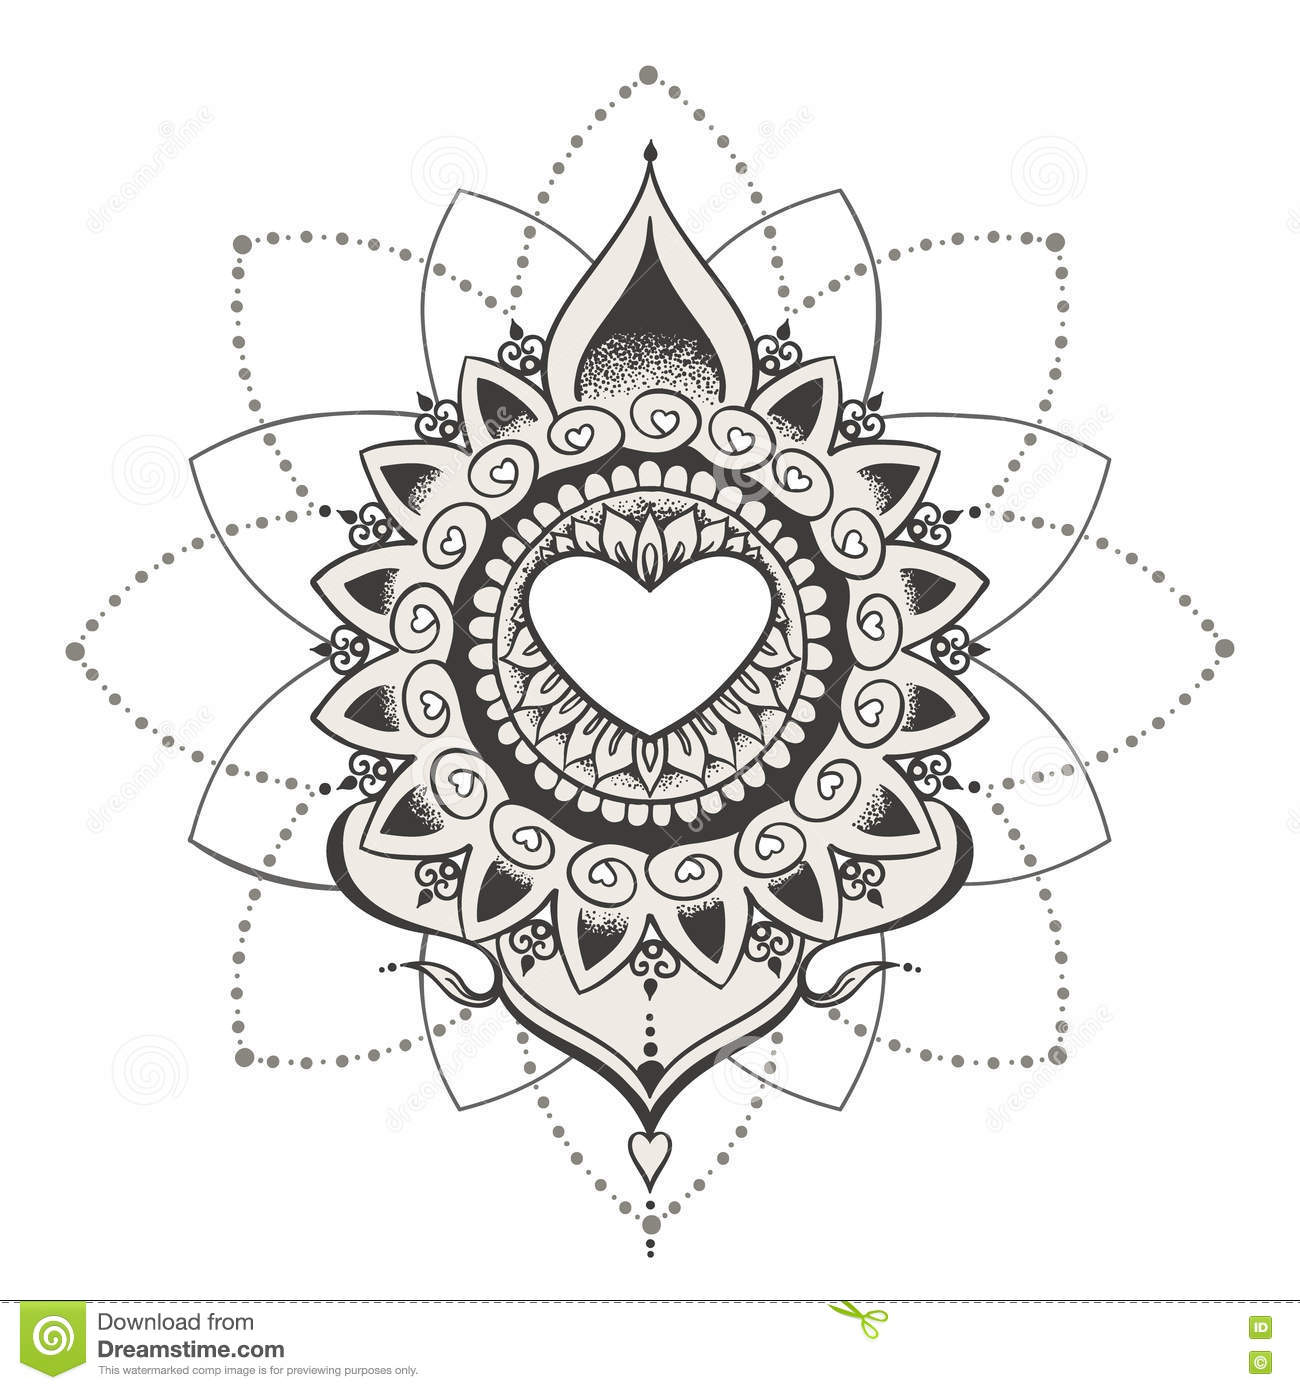 Sketch Of Tattoo Henna Hearts Stock Vector Illustration Of Style